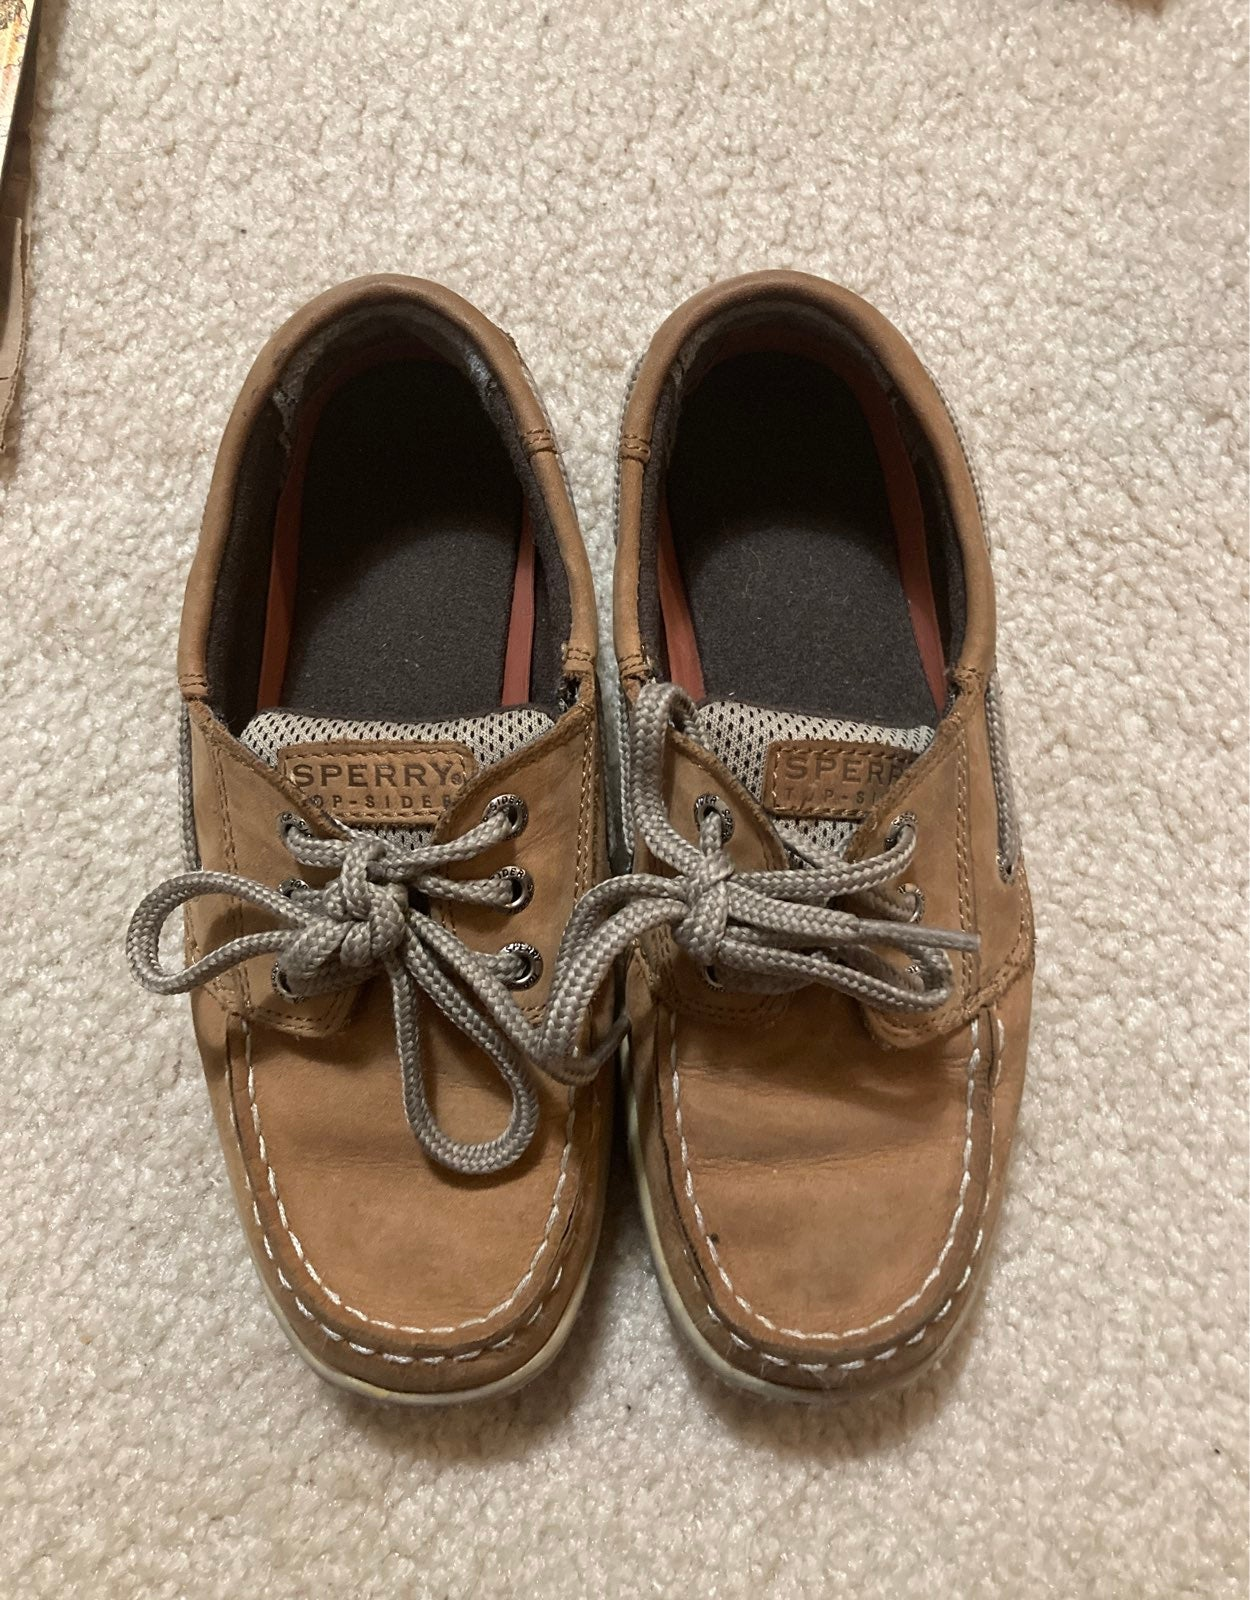 Sperry shoes size 1.5